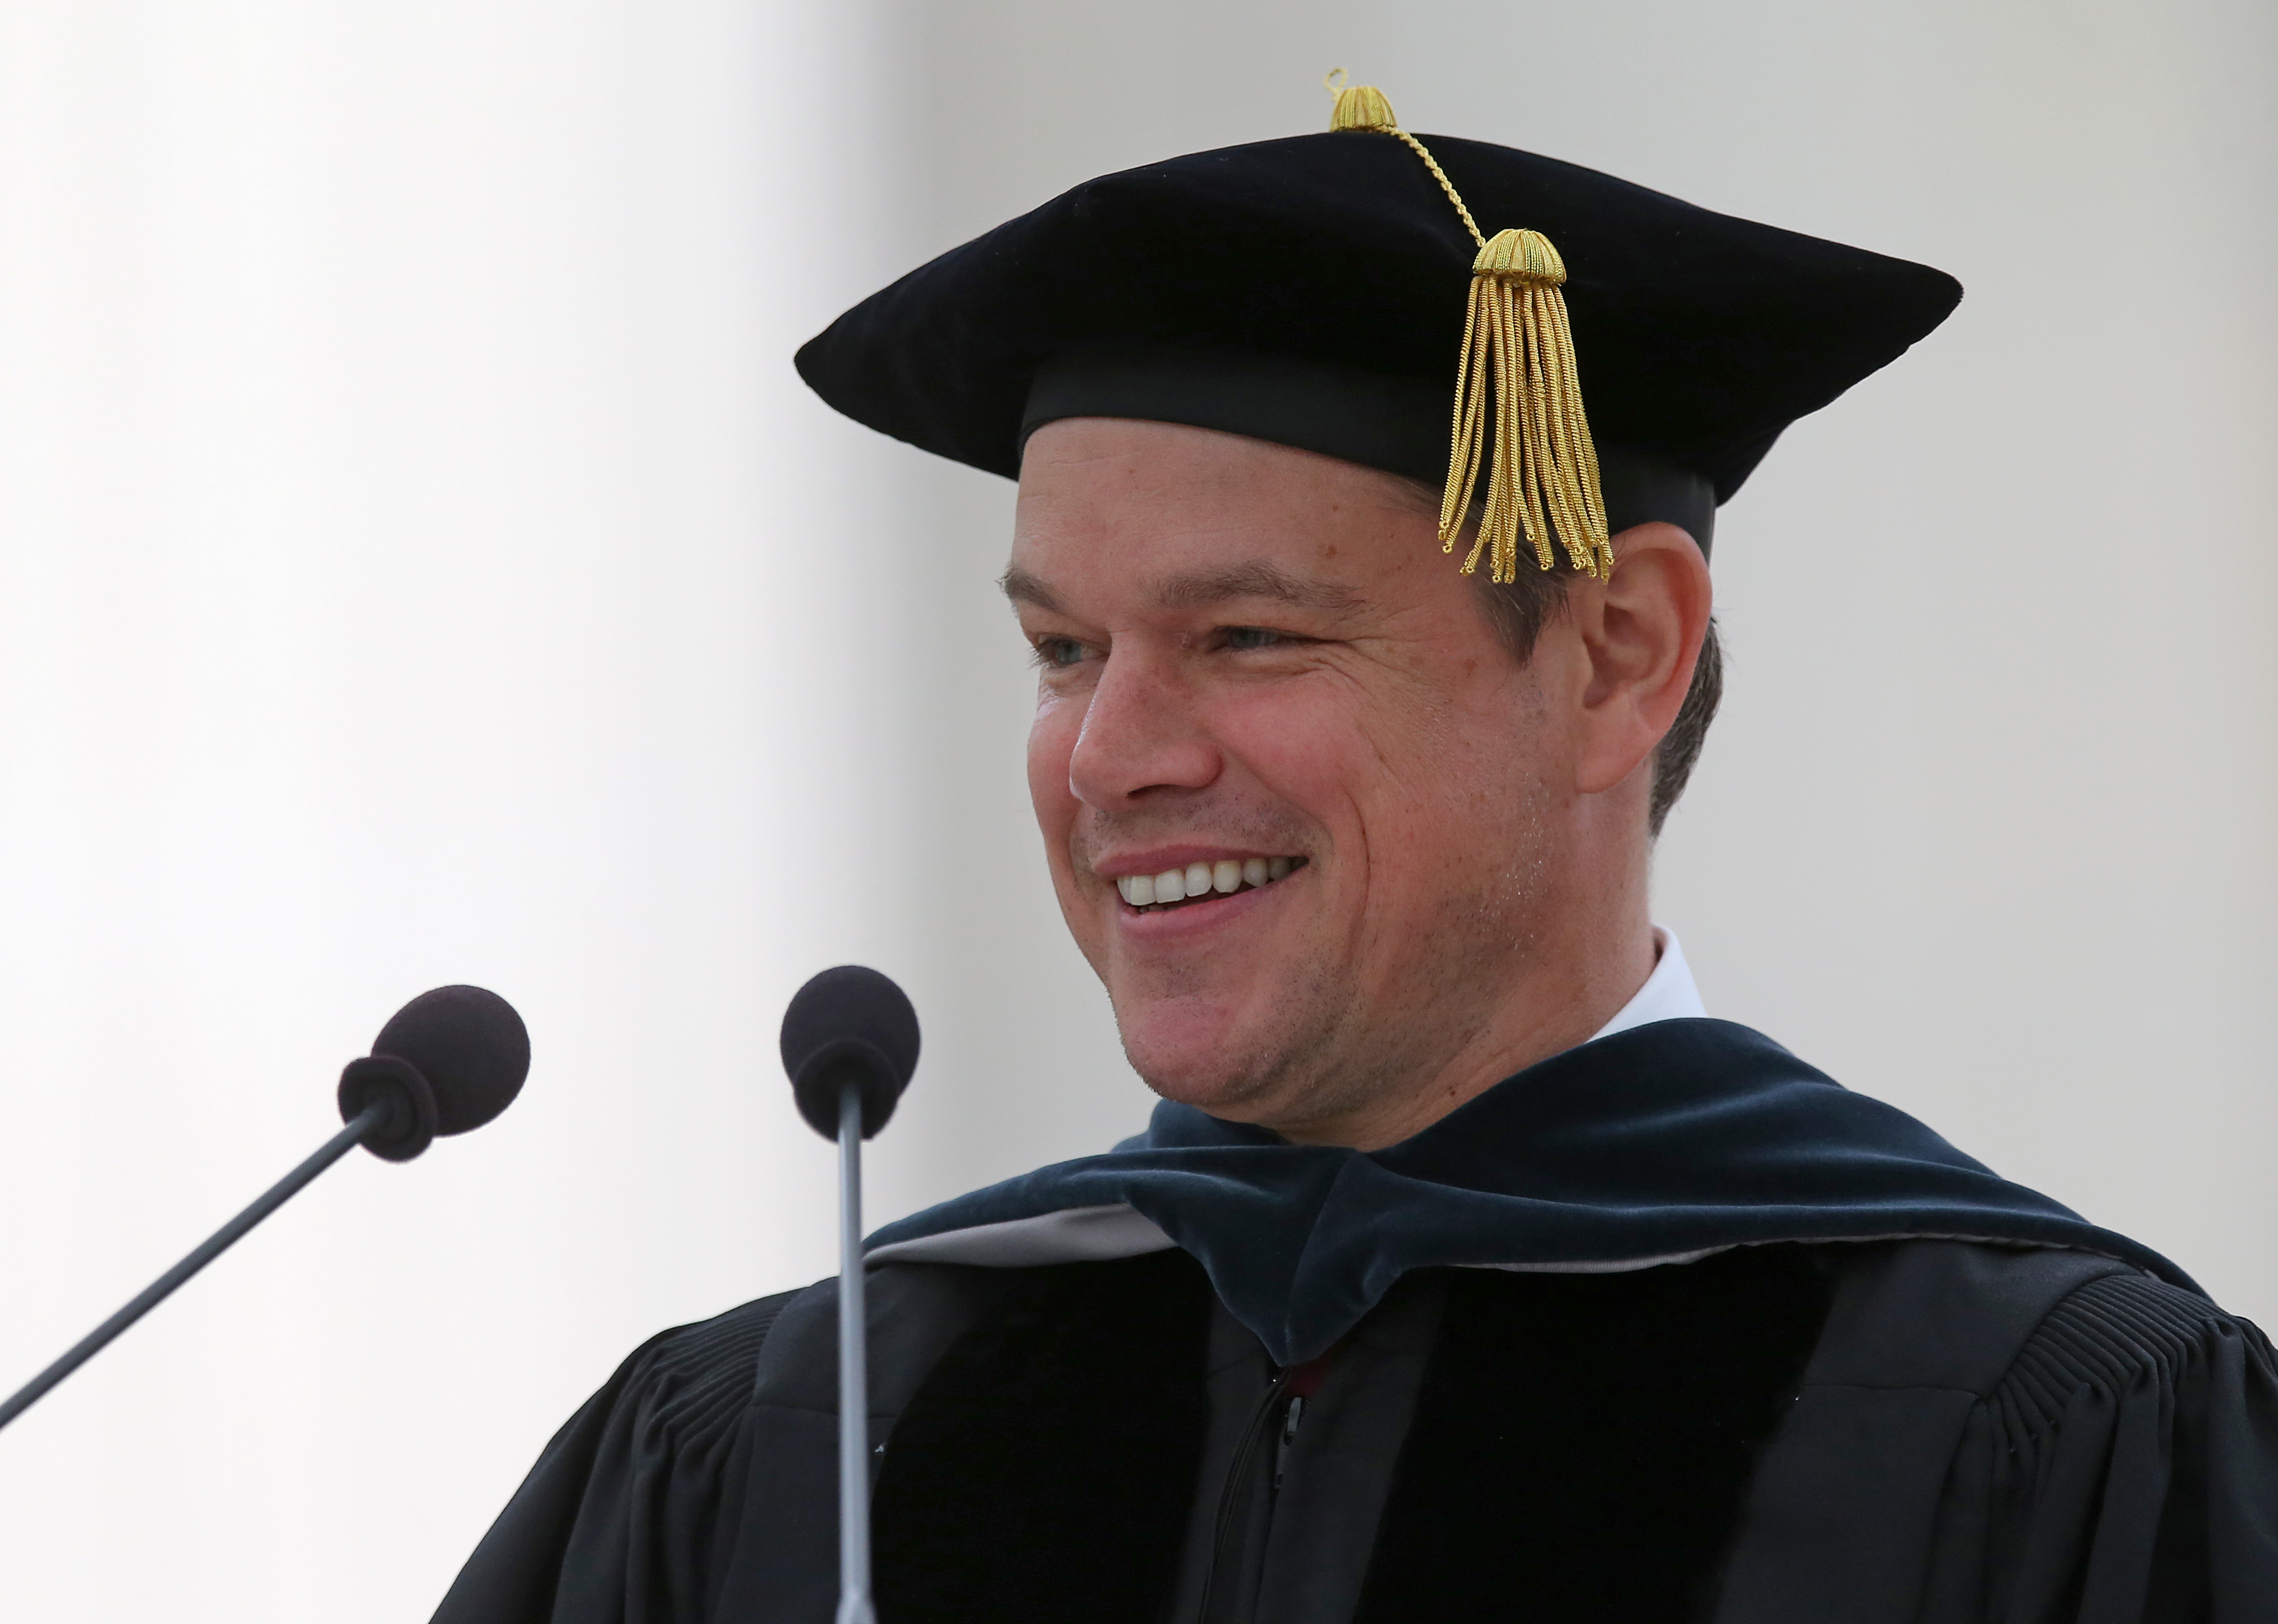 WATCH: Matt Damon delivers a moving politically-charged commencement speech at MIT